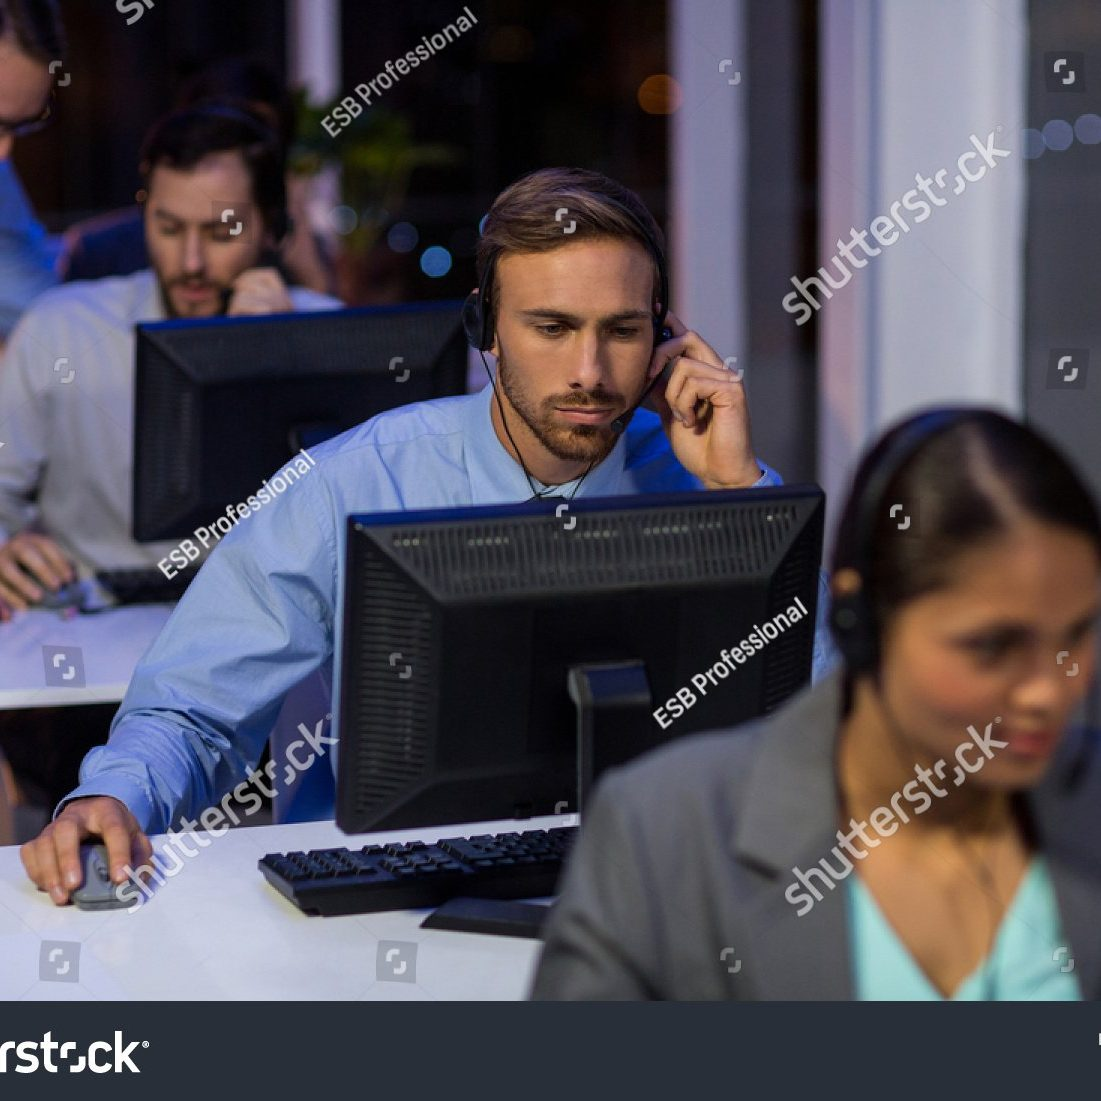 stock-photo-businessman-with-headsets-using-computer-in-office-at-night-491362219